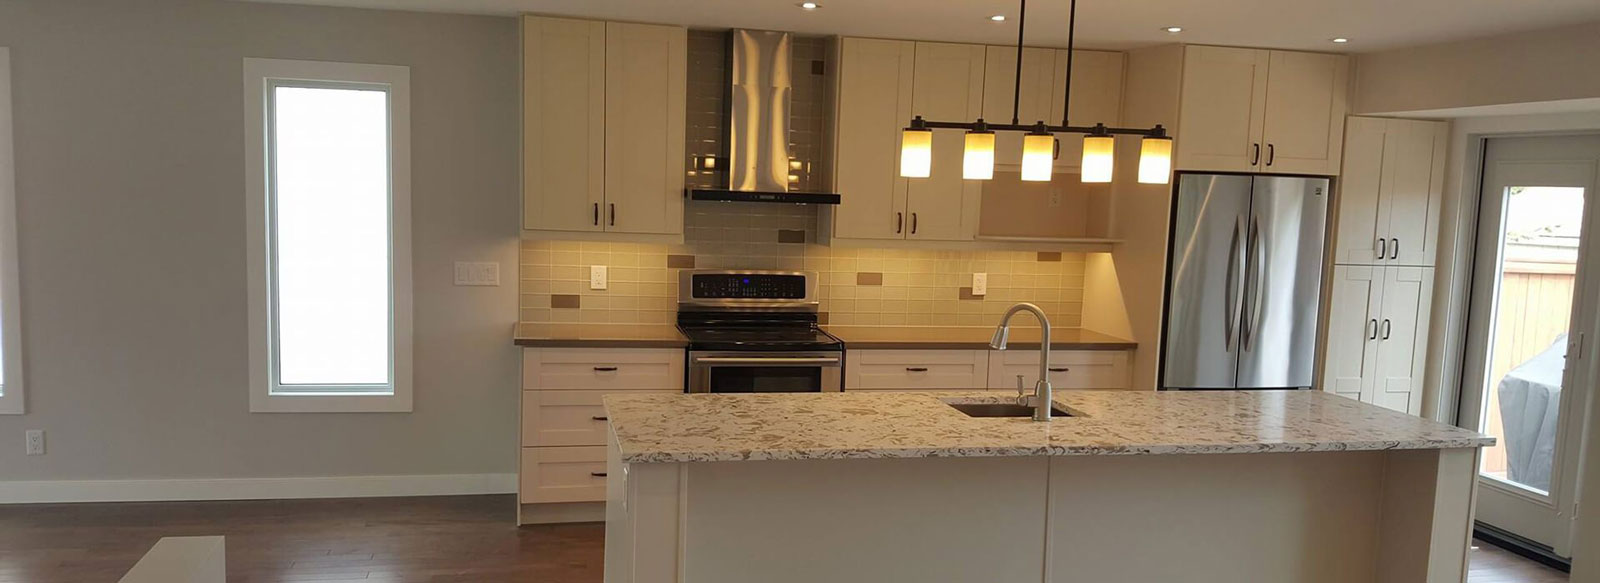 Kitchen Cabinets Store Winnipeg Winnipeg Cabinets Bathroom Vanities